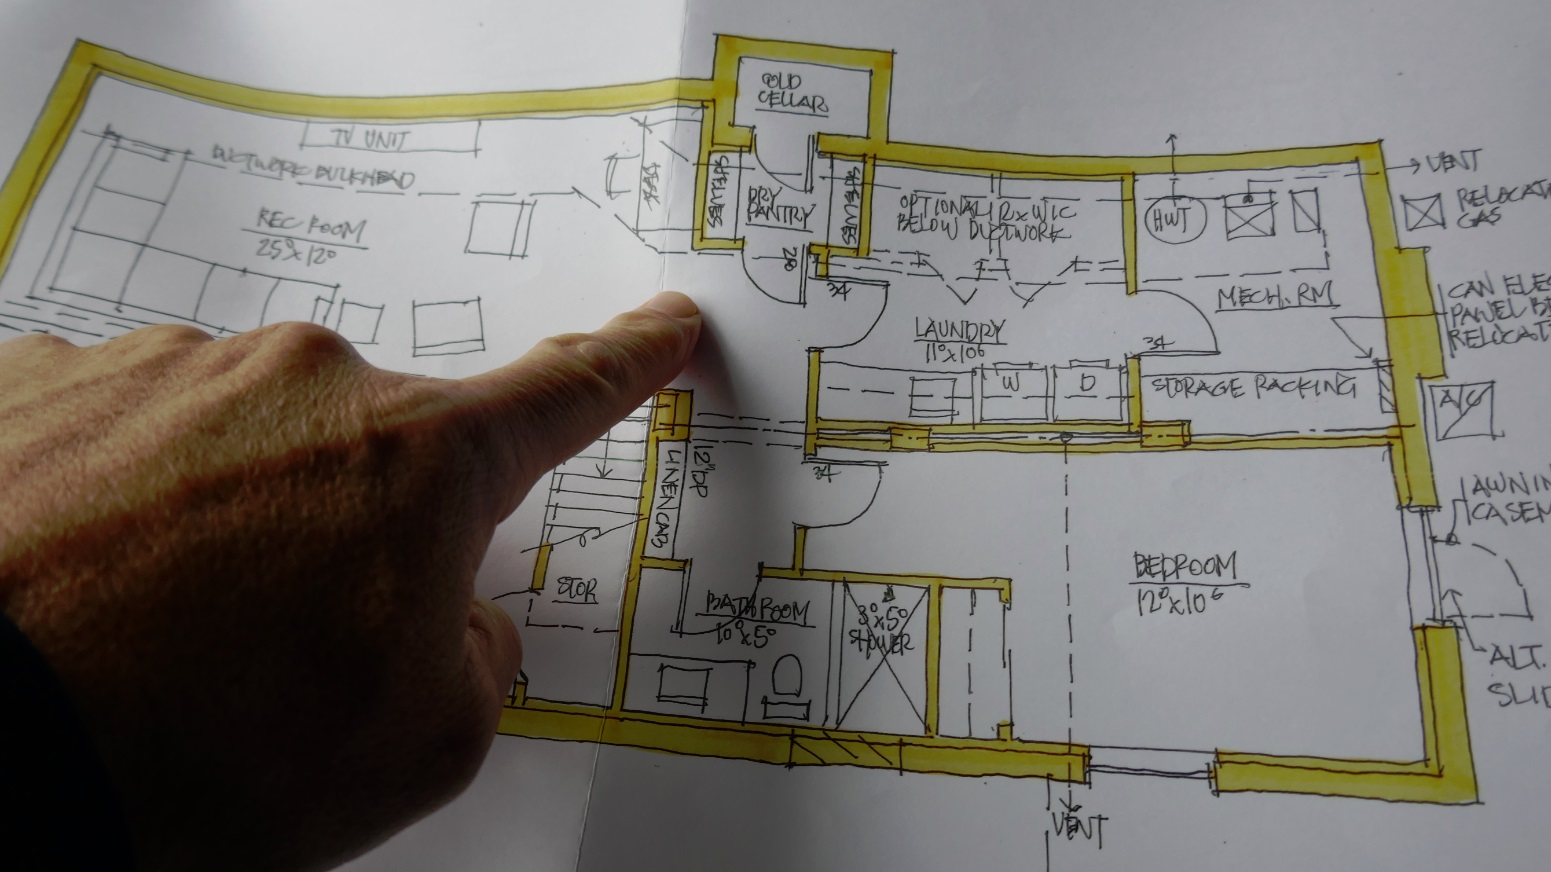 finger on blueprints showing a cold cellar, not a wine cellar